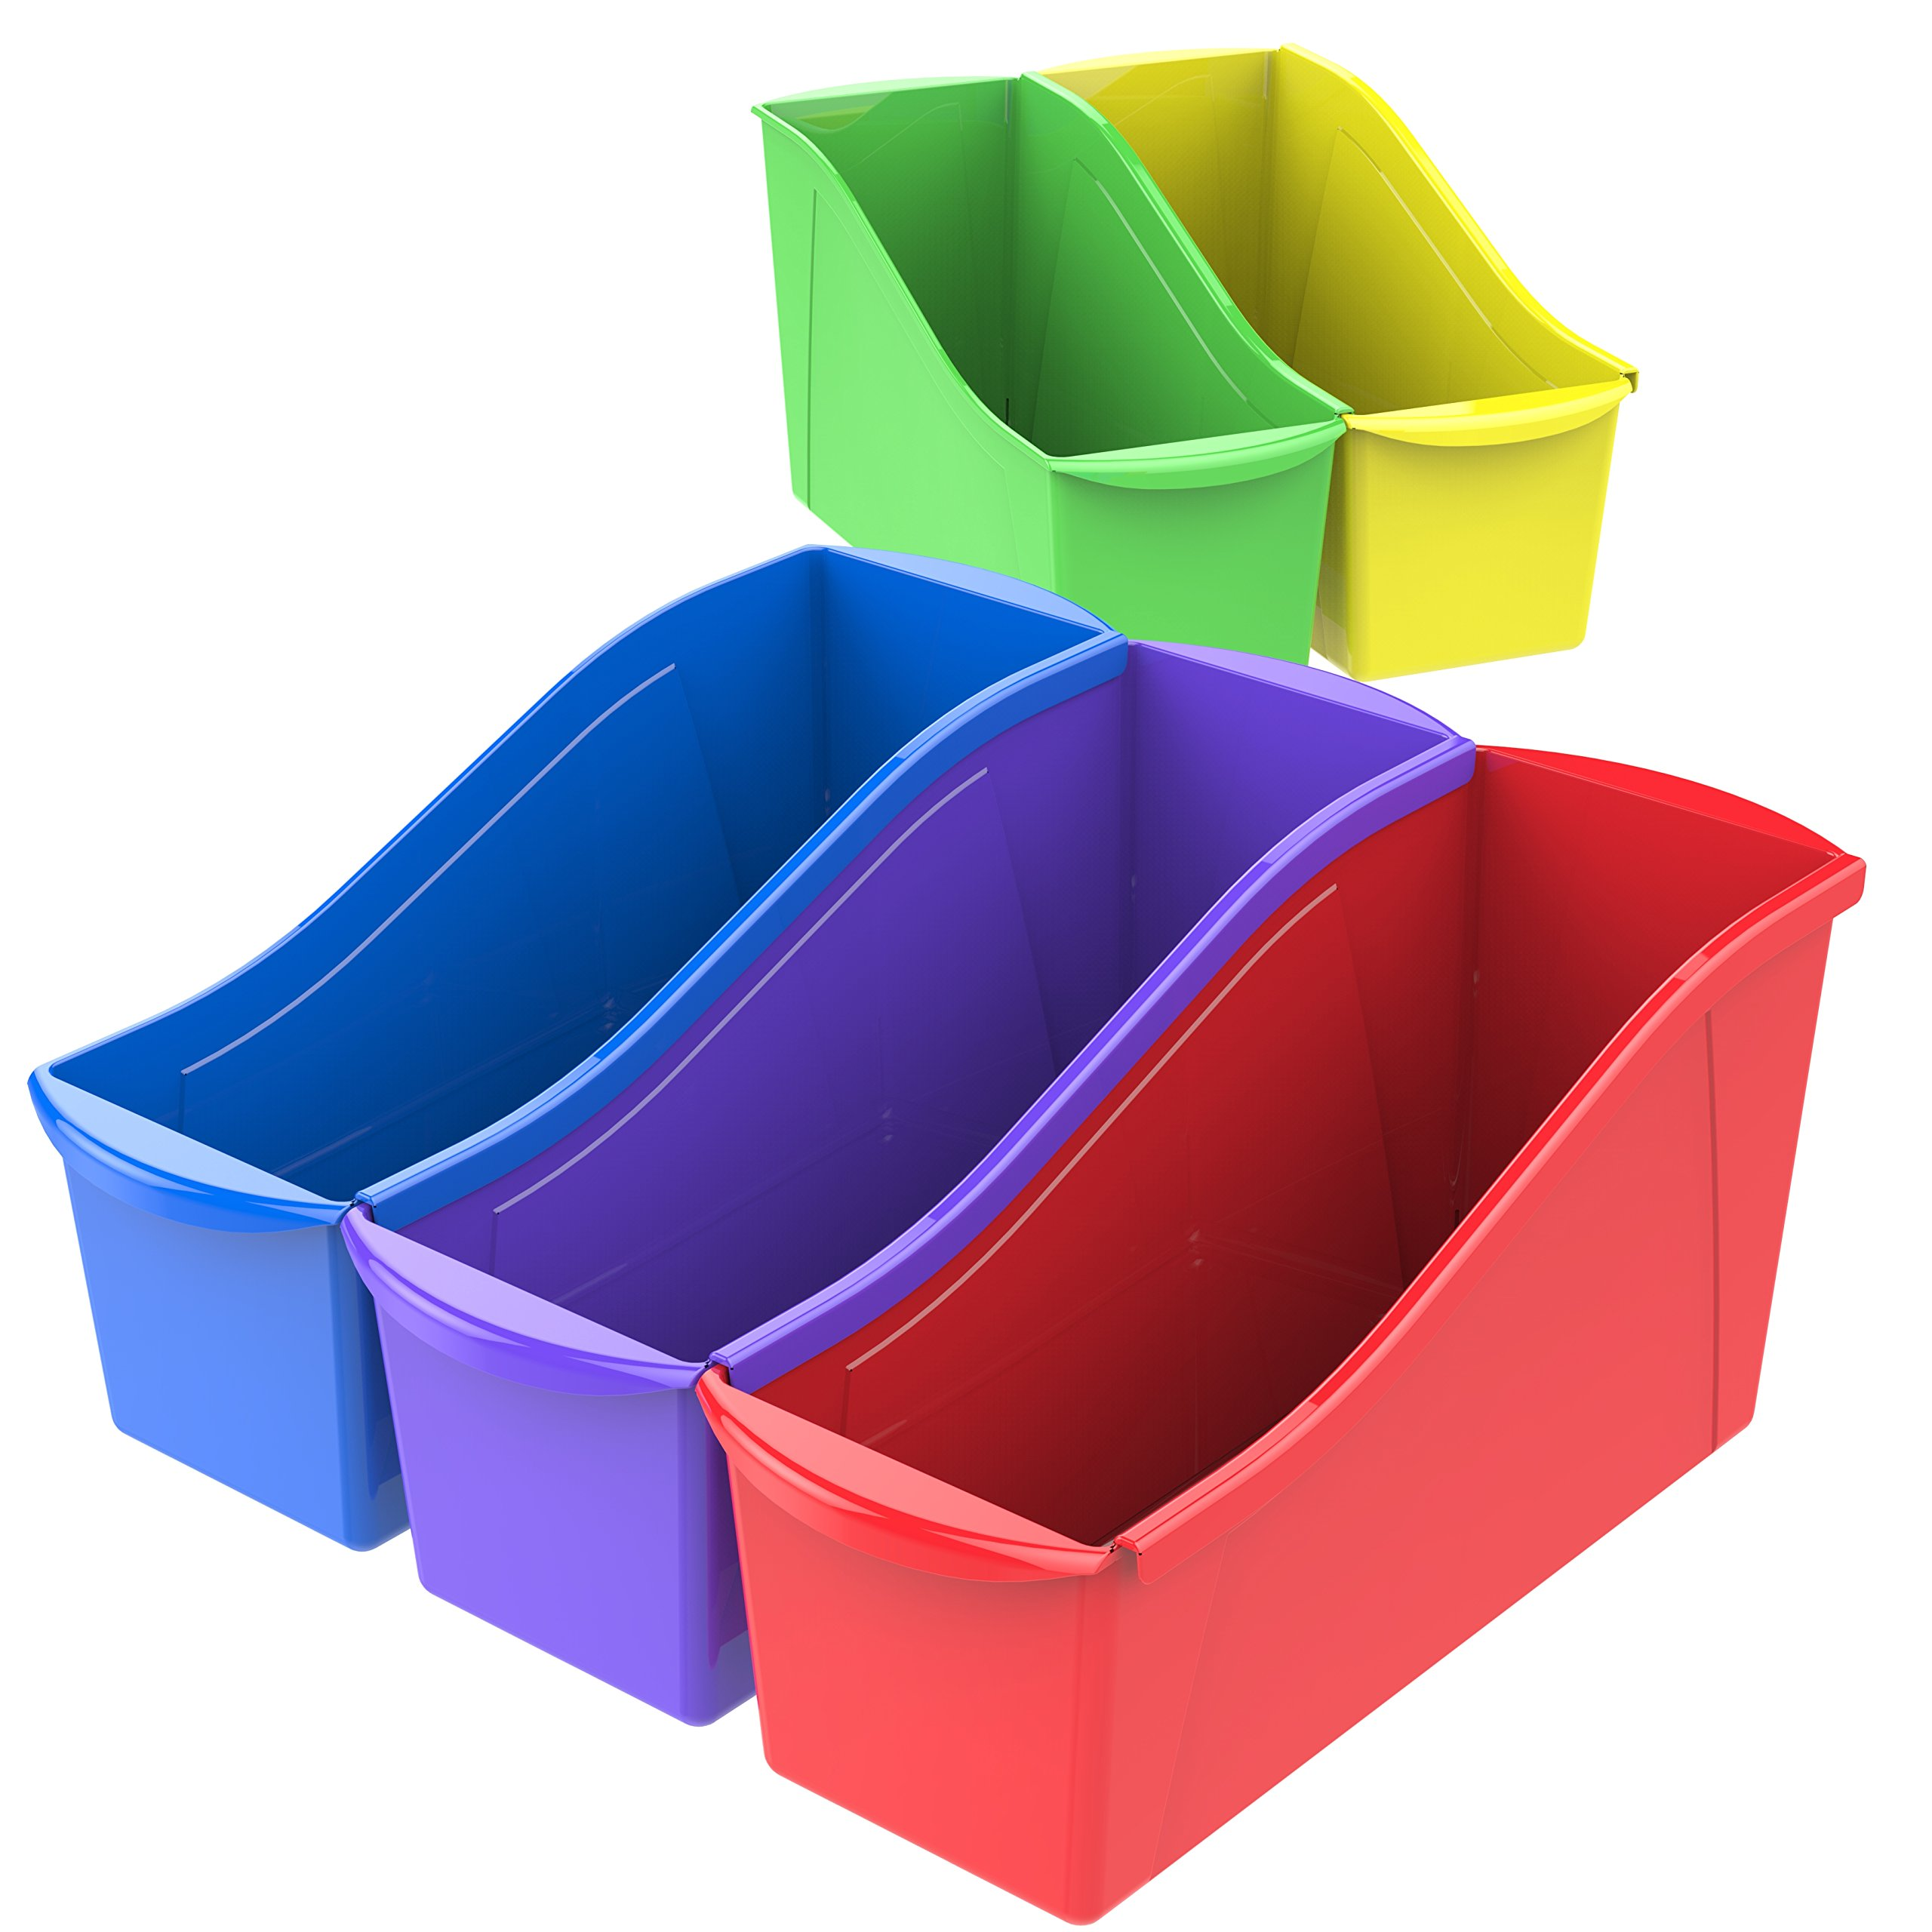 Storex Book Bins, 11-Inch, Assorted Colors, 30 Bins (STX70105U06C)